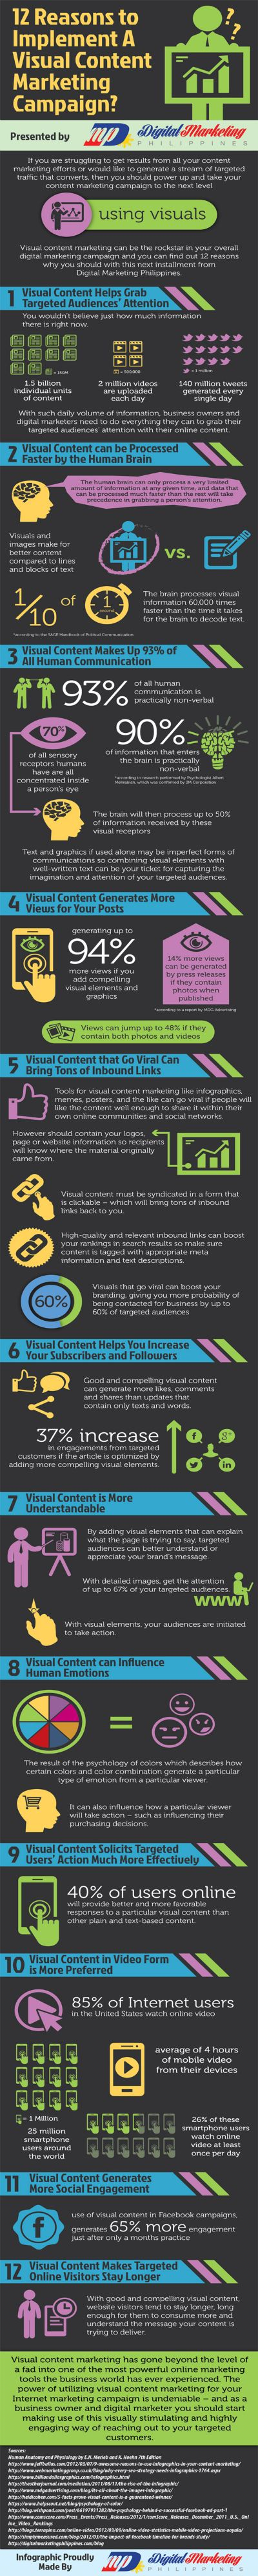 26 best inbound infographics images on pinterest inbound marketing 12 reasons to implement a visual content marketing campaign infographic an infographic from digital marketing philippines fandeluxe Image collections